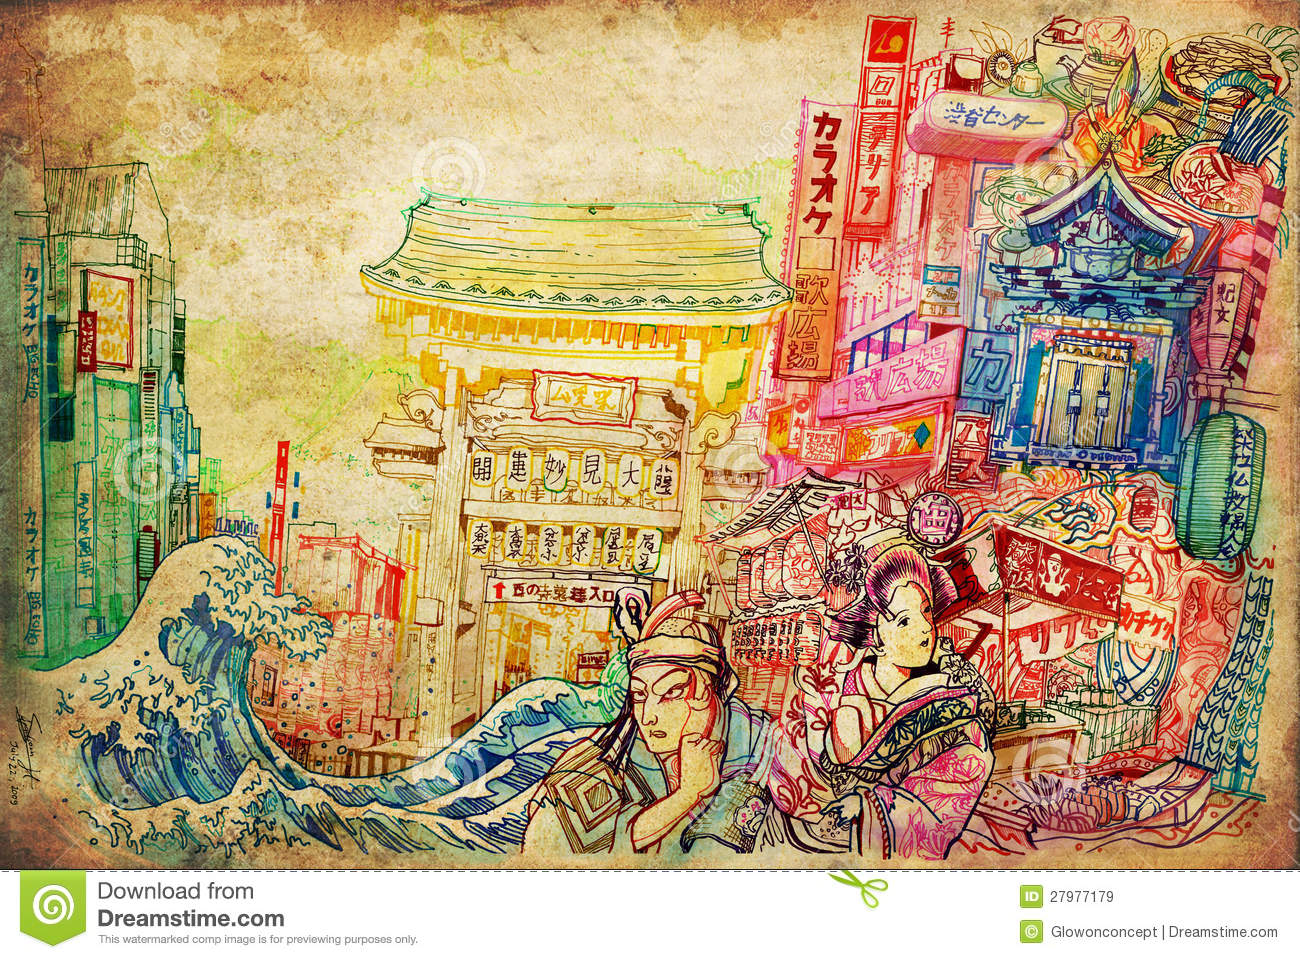 beautiful drawing of Japanese culture architecture art and painting